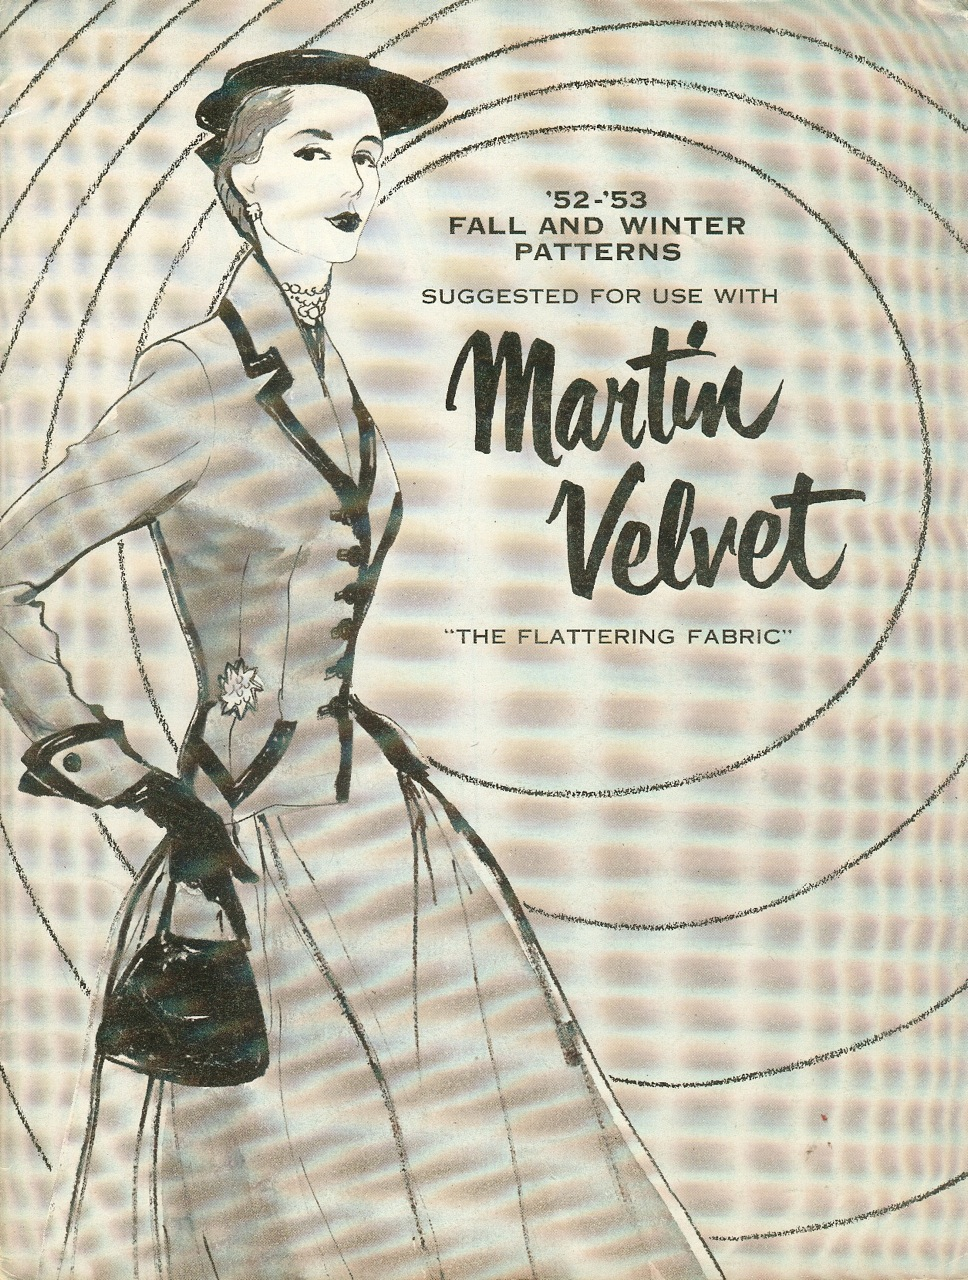 Martin Velvet '52-'53 Fall and Winter Patterns